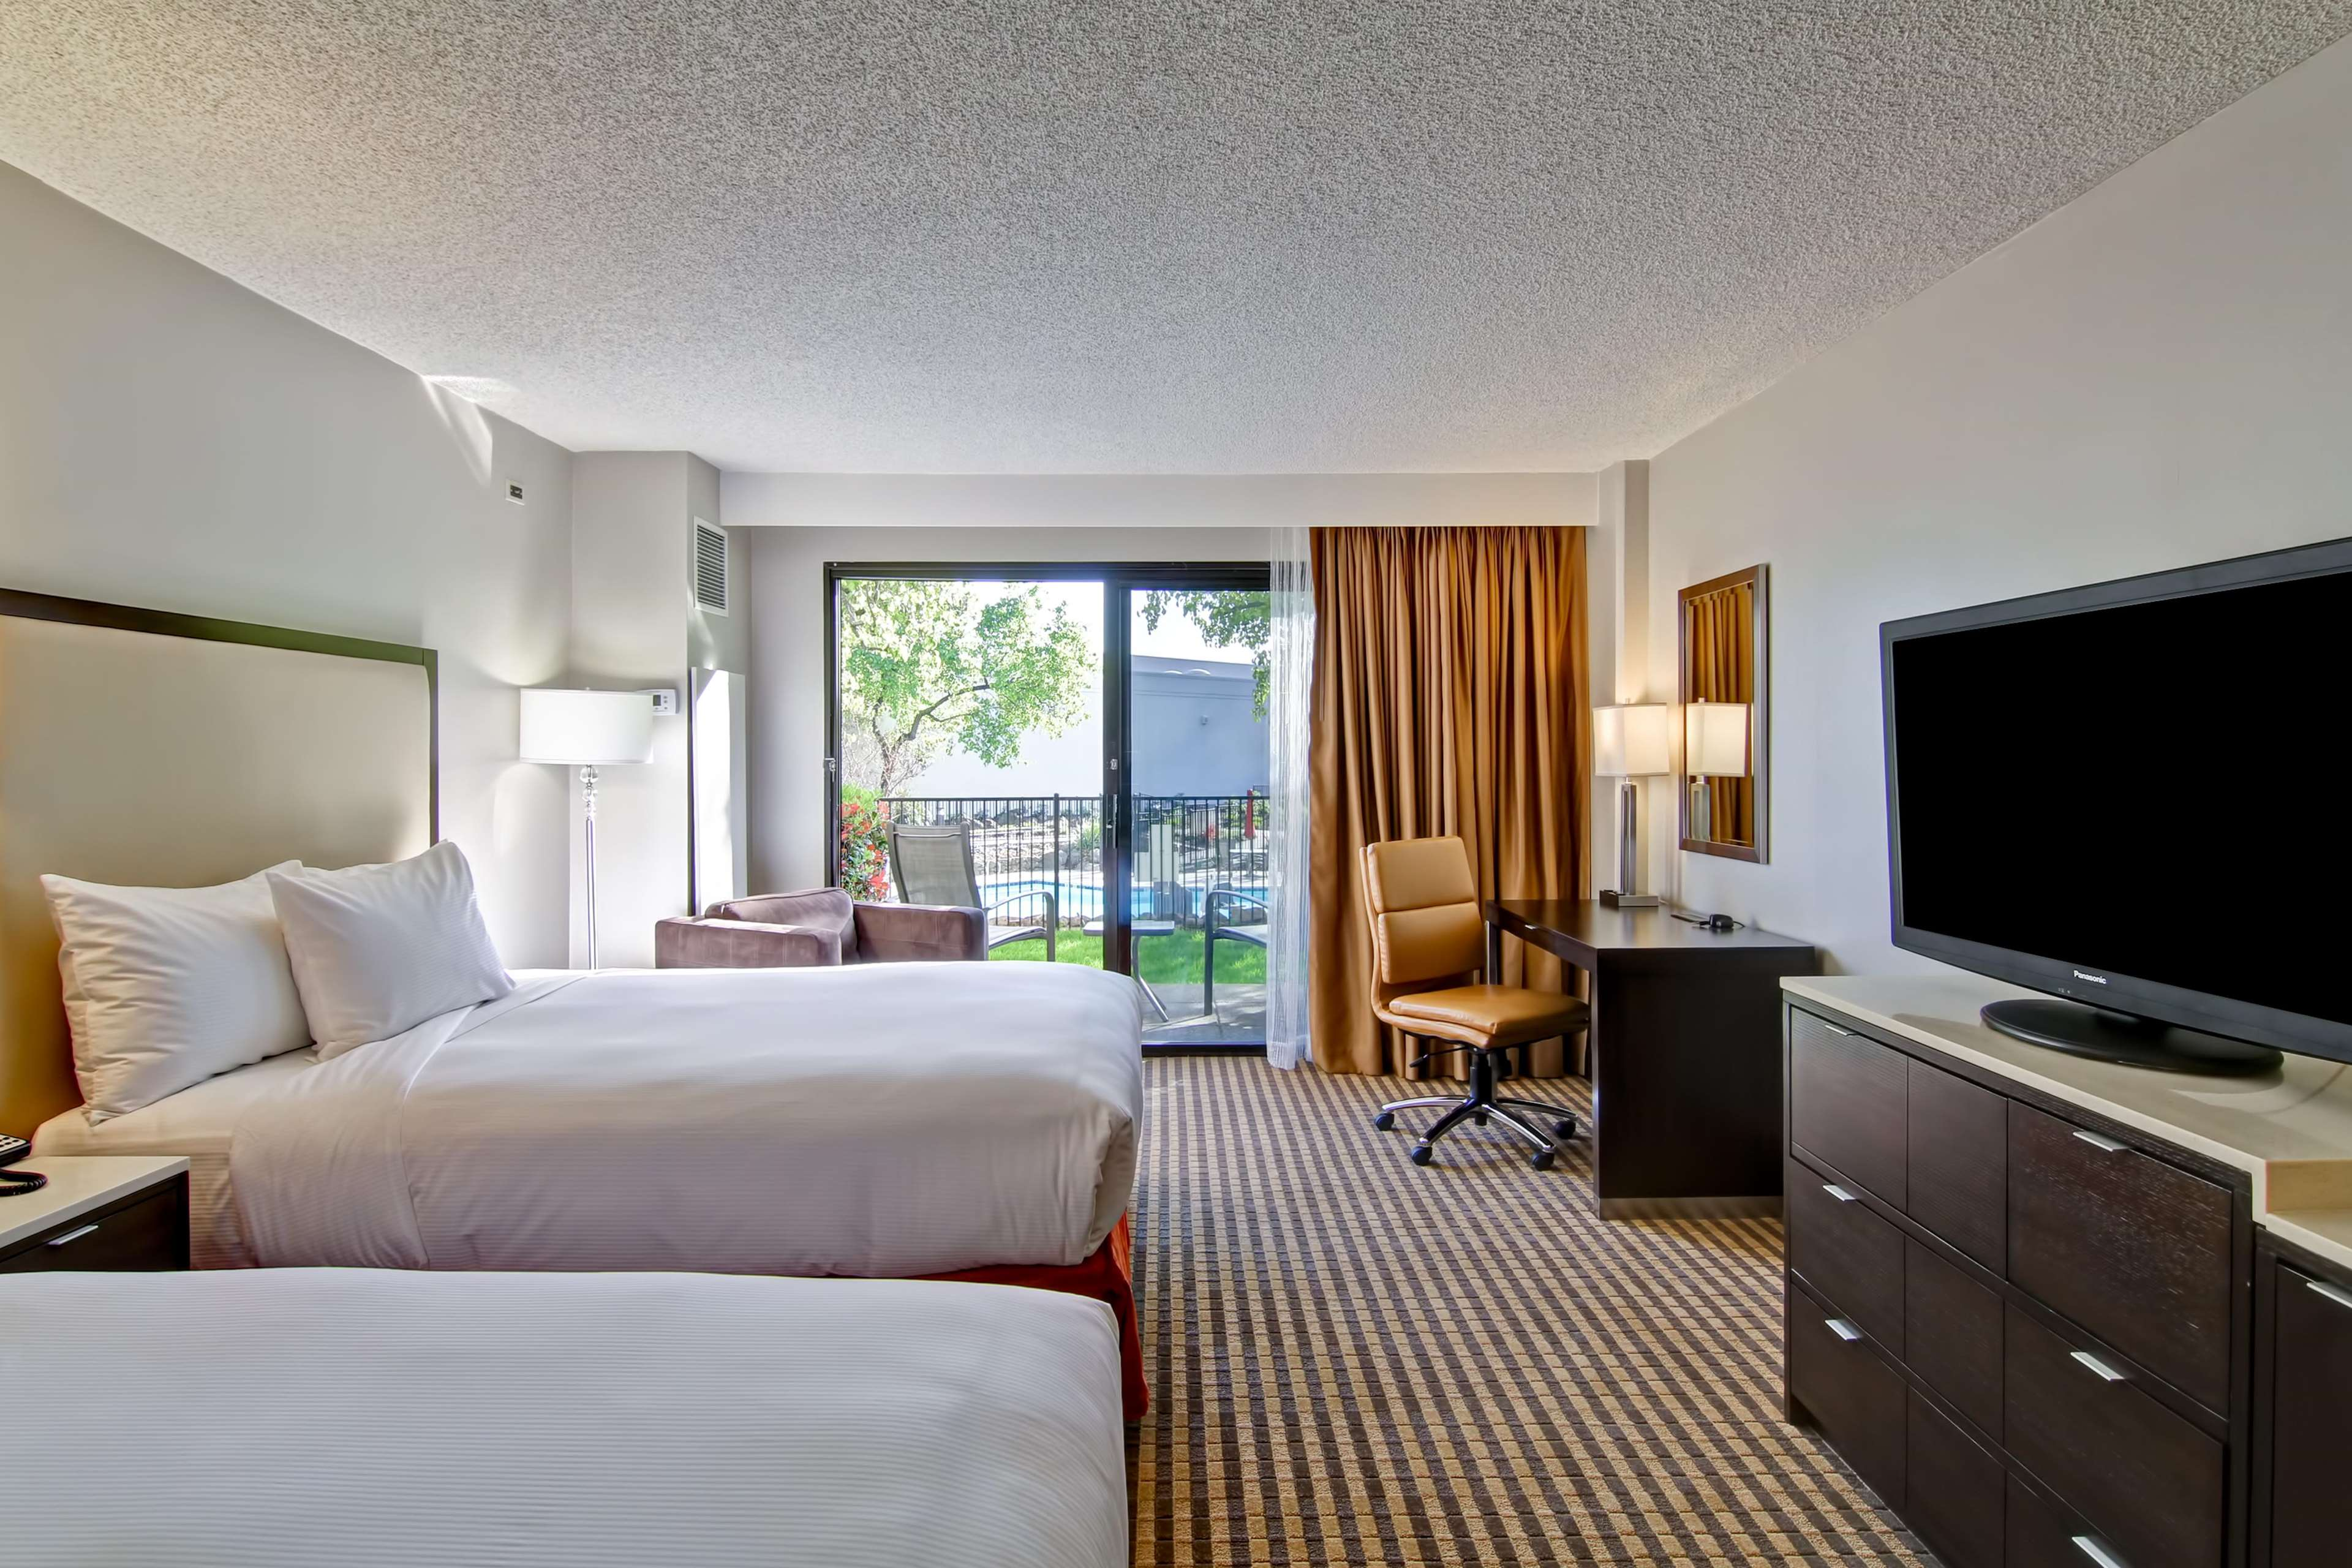 DoubleTree by Hilton Hotel Pleasanton at the Club image 36